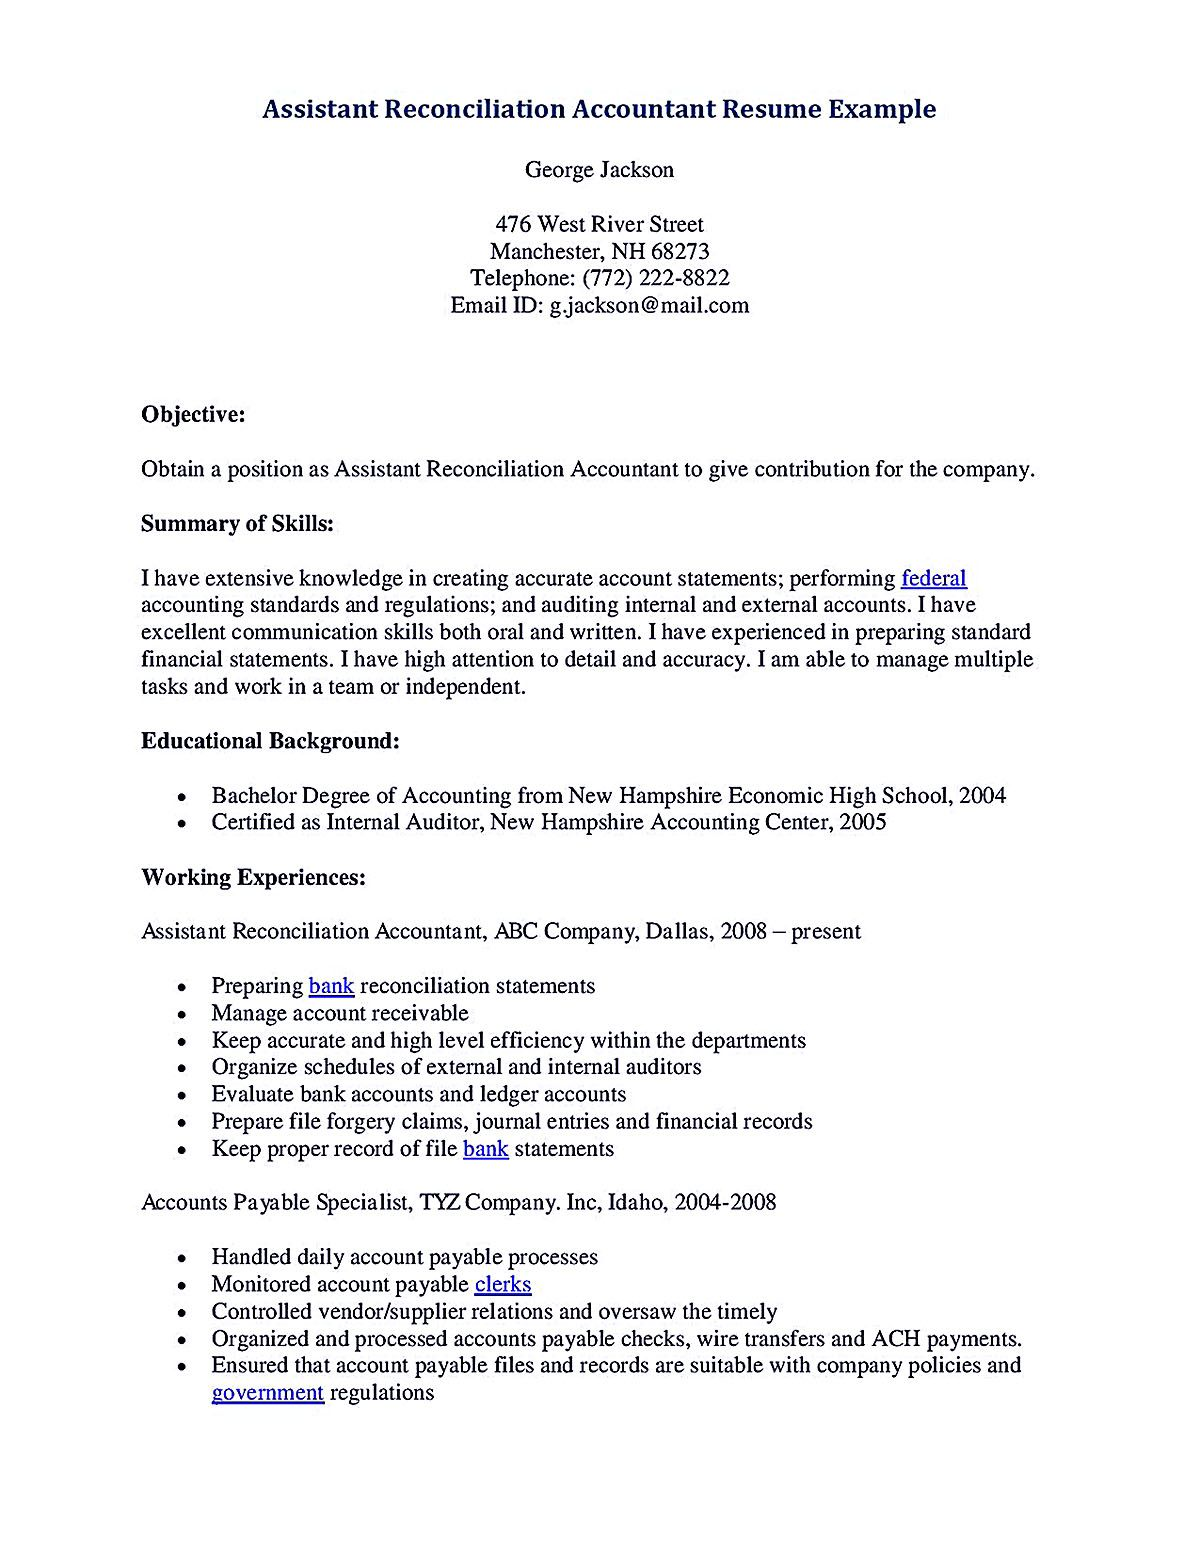 resume for accounting assistant whether or not accounting whether or not accounting assistant resume can be successful depending on how you will make the resume it doesn t matter if this is the accounting